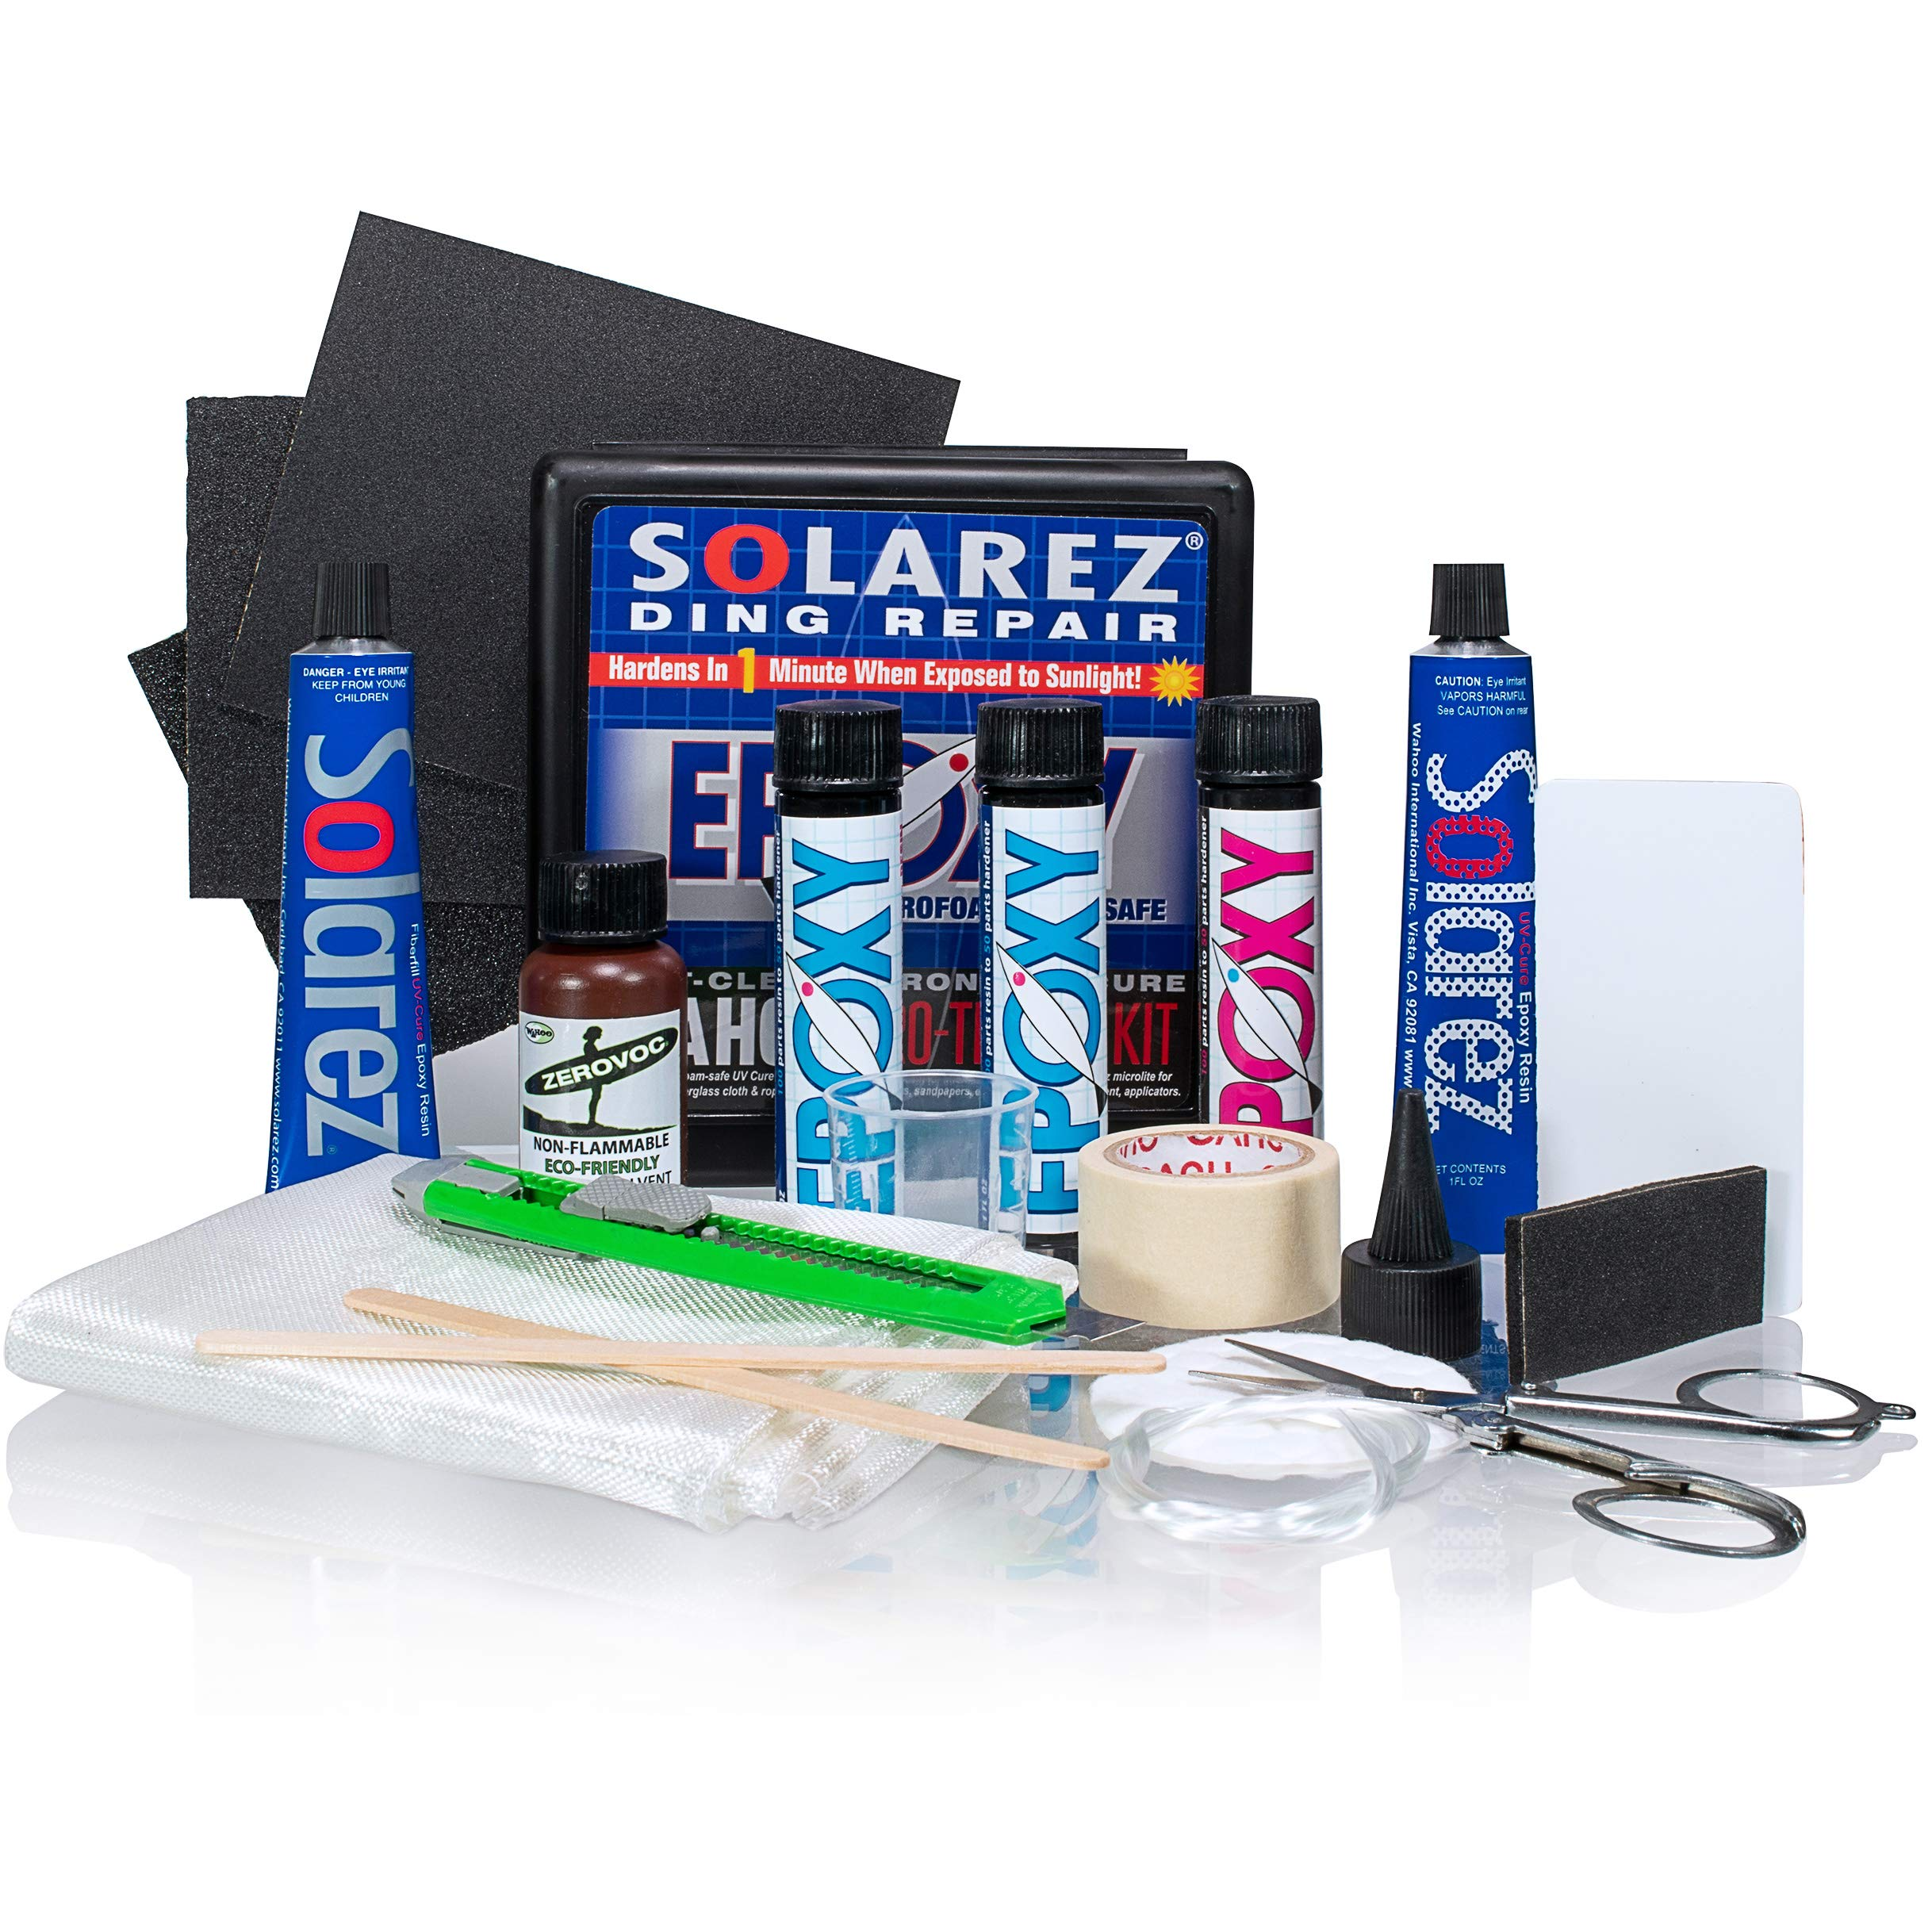 SOLAREZ UV Cure Epoxy PRO Travel Kit ~ Epoxy Surfboard Repair Kit ~ Cures 3 min in The Sun for a Professional Repair! Plus - Low Odor, Easy to Use, Made in The USA! by SOLAREZ